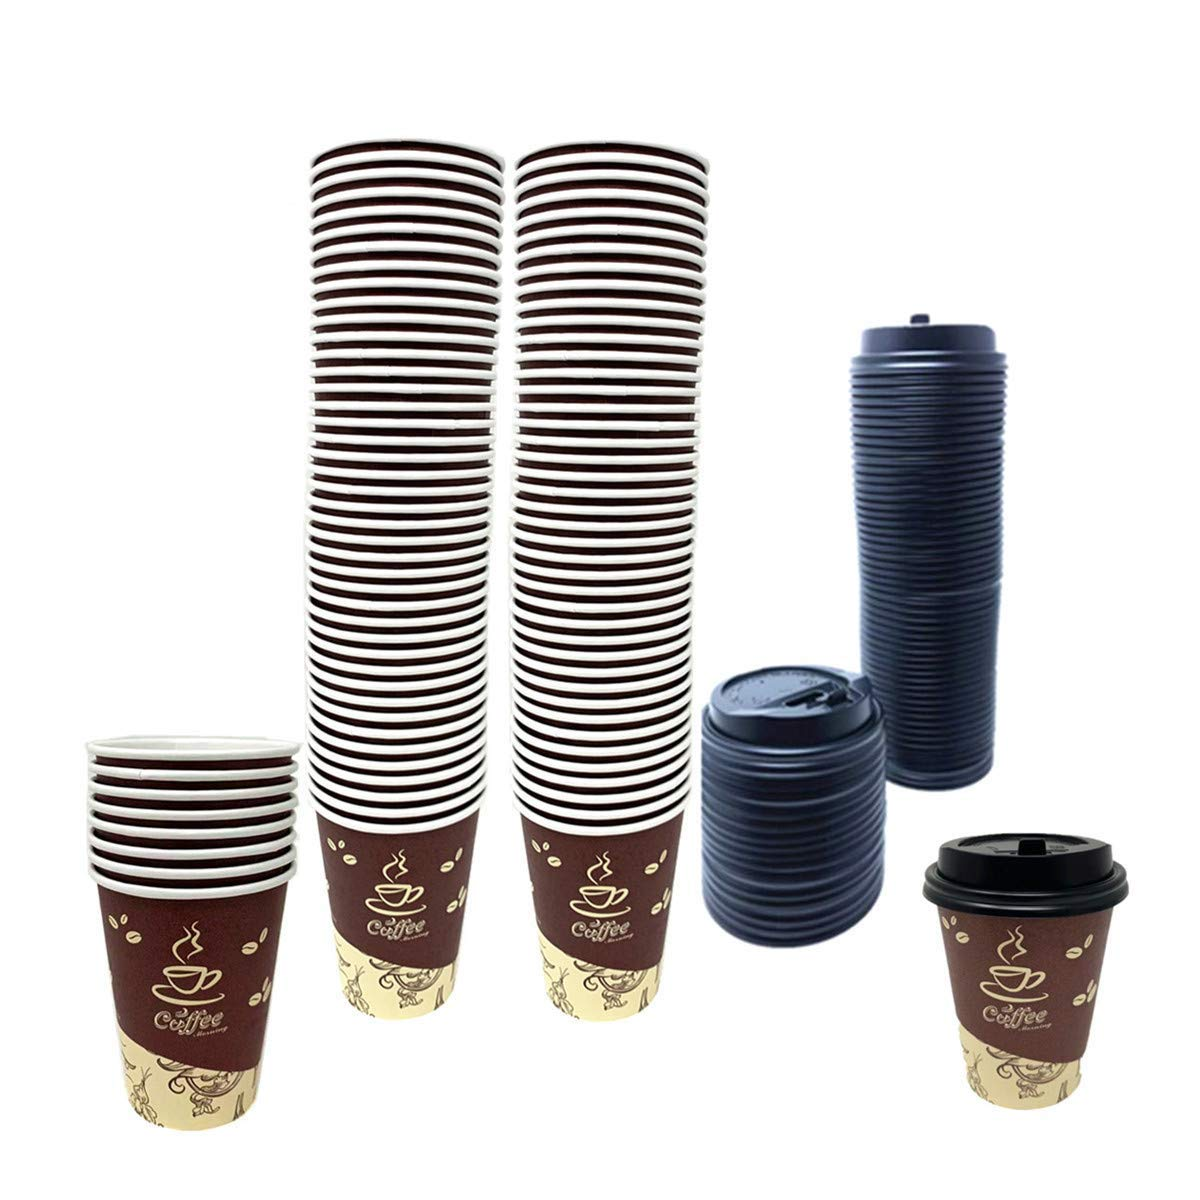 100 Pack Quality Disposable Paper Hot Coffee Cups with Lids, Perfect For Hot Drinks Tea & Coffee , Coffee Shops And Bars (8 oz, Coffee Bean Design) by Tsyware